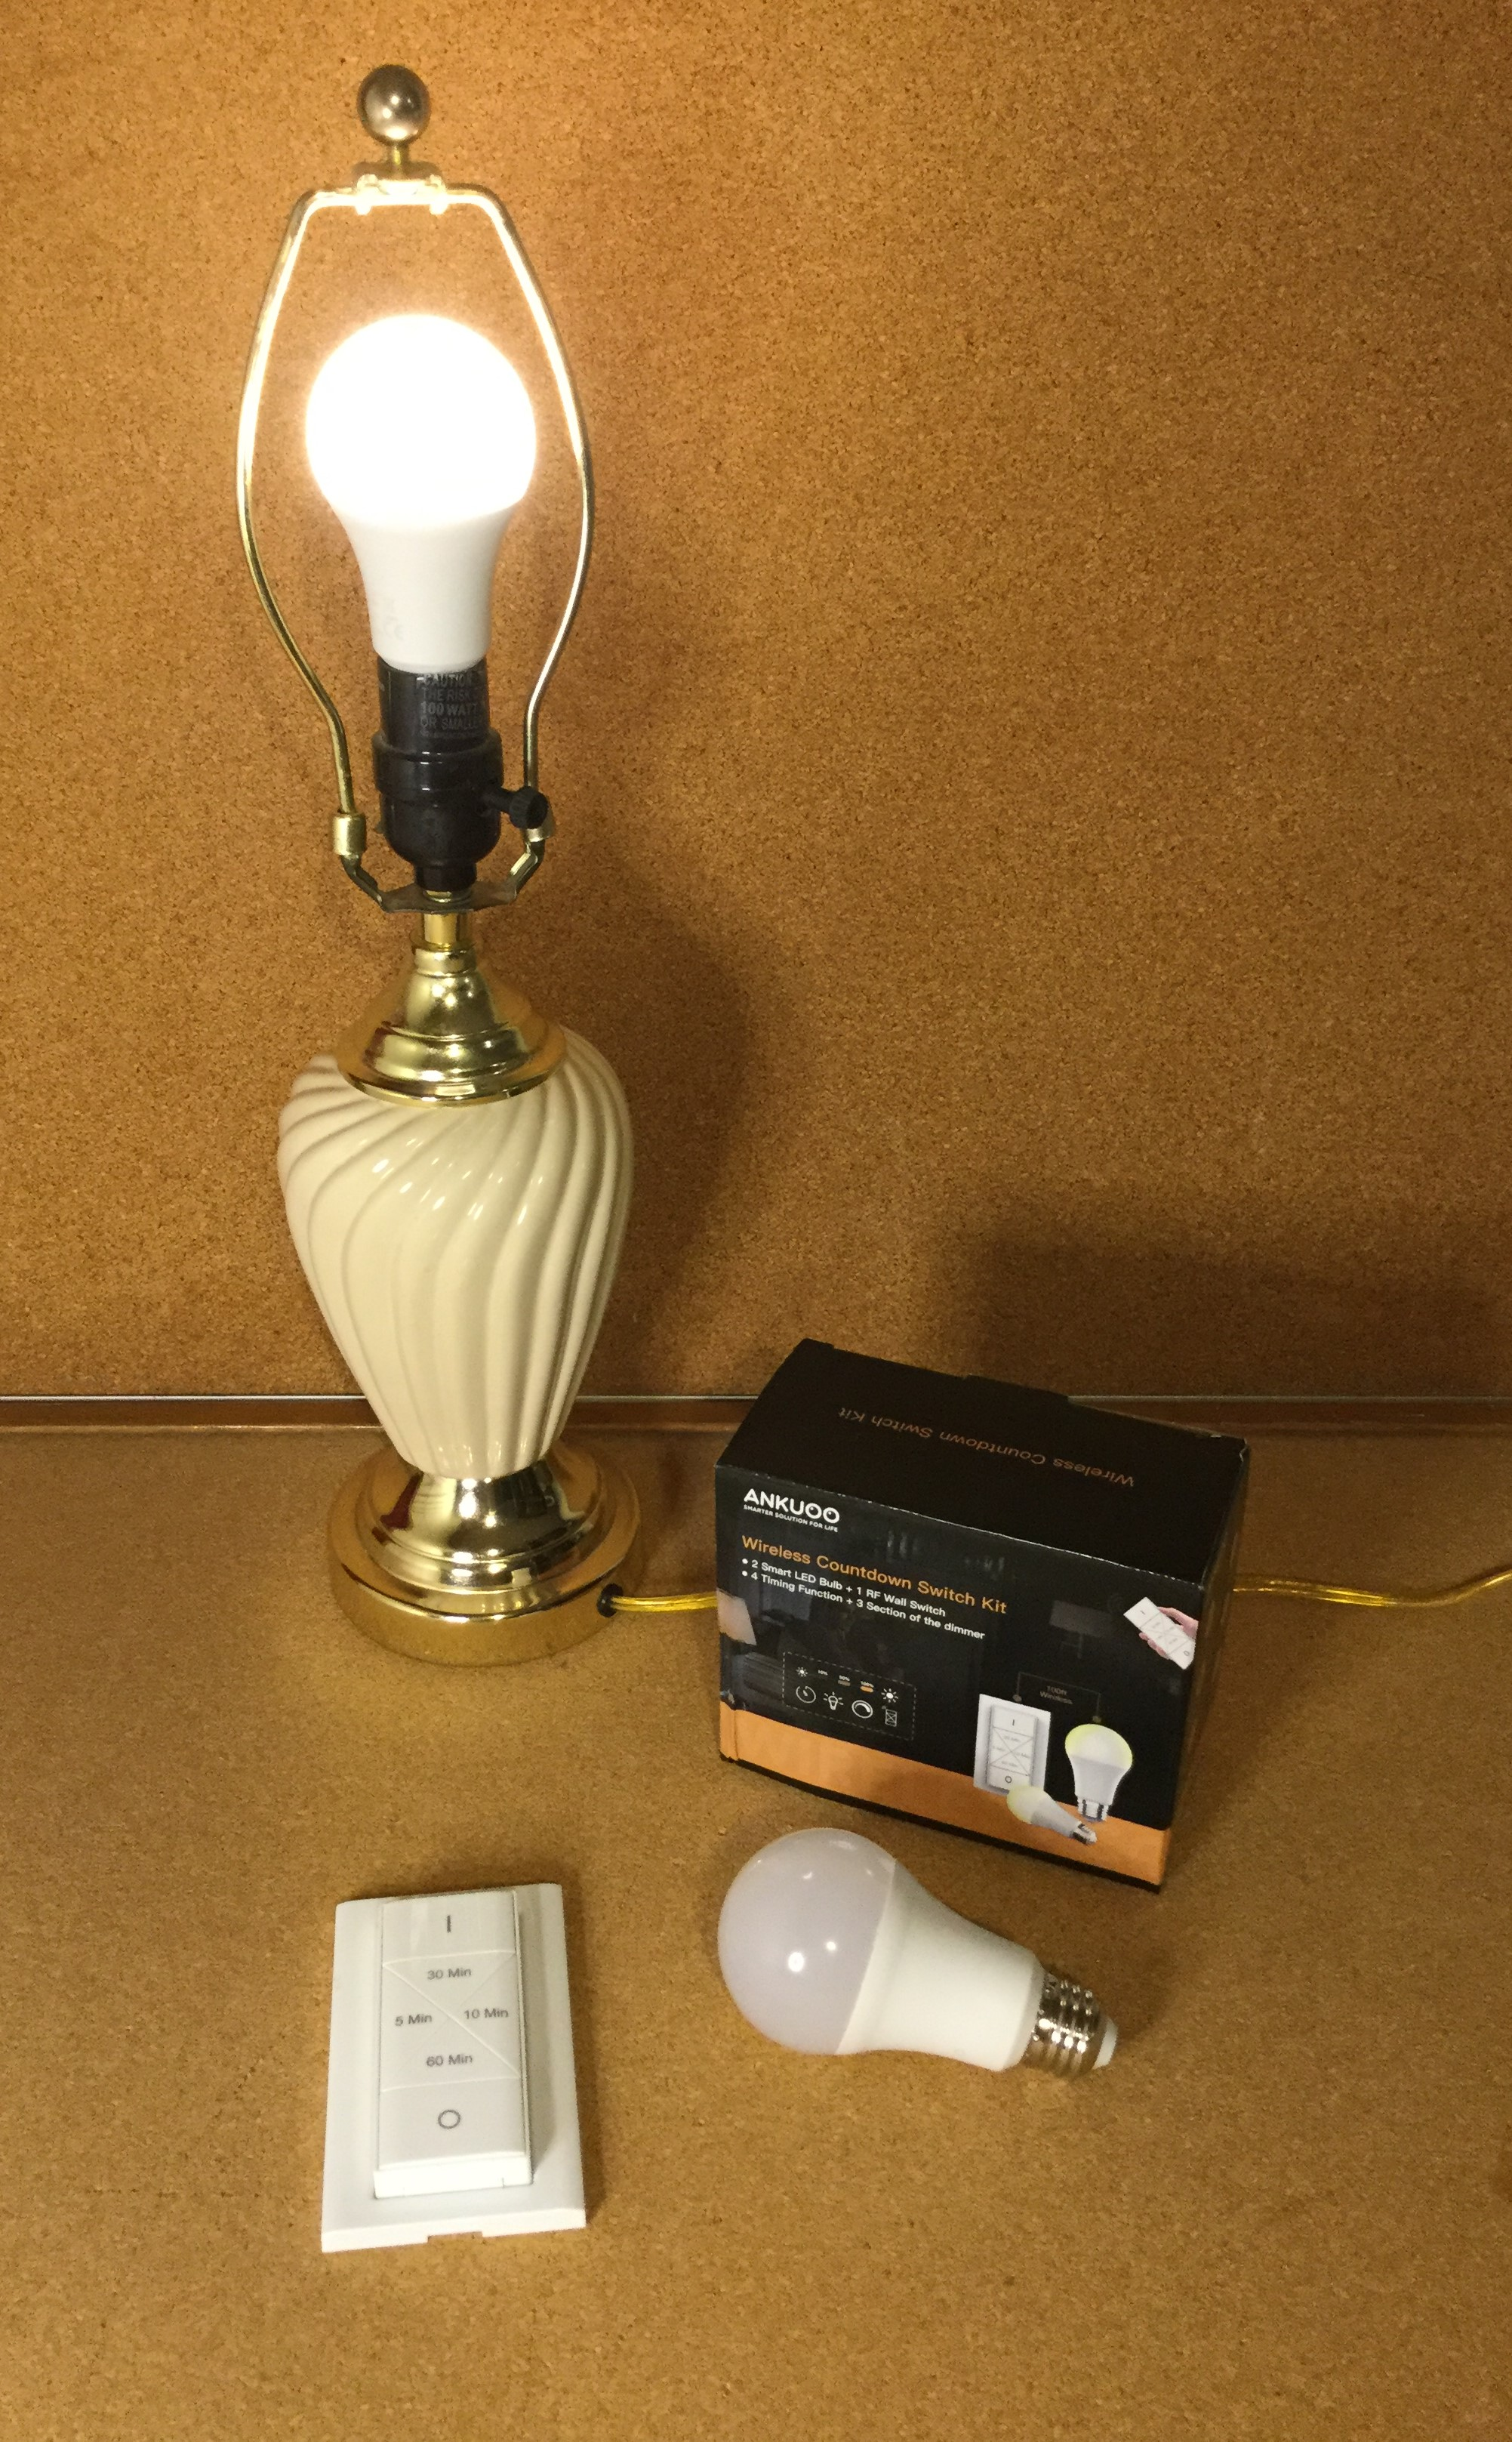 dimmable lights without the expensive wiring